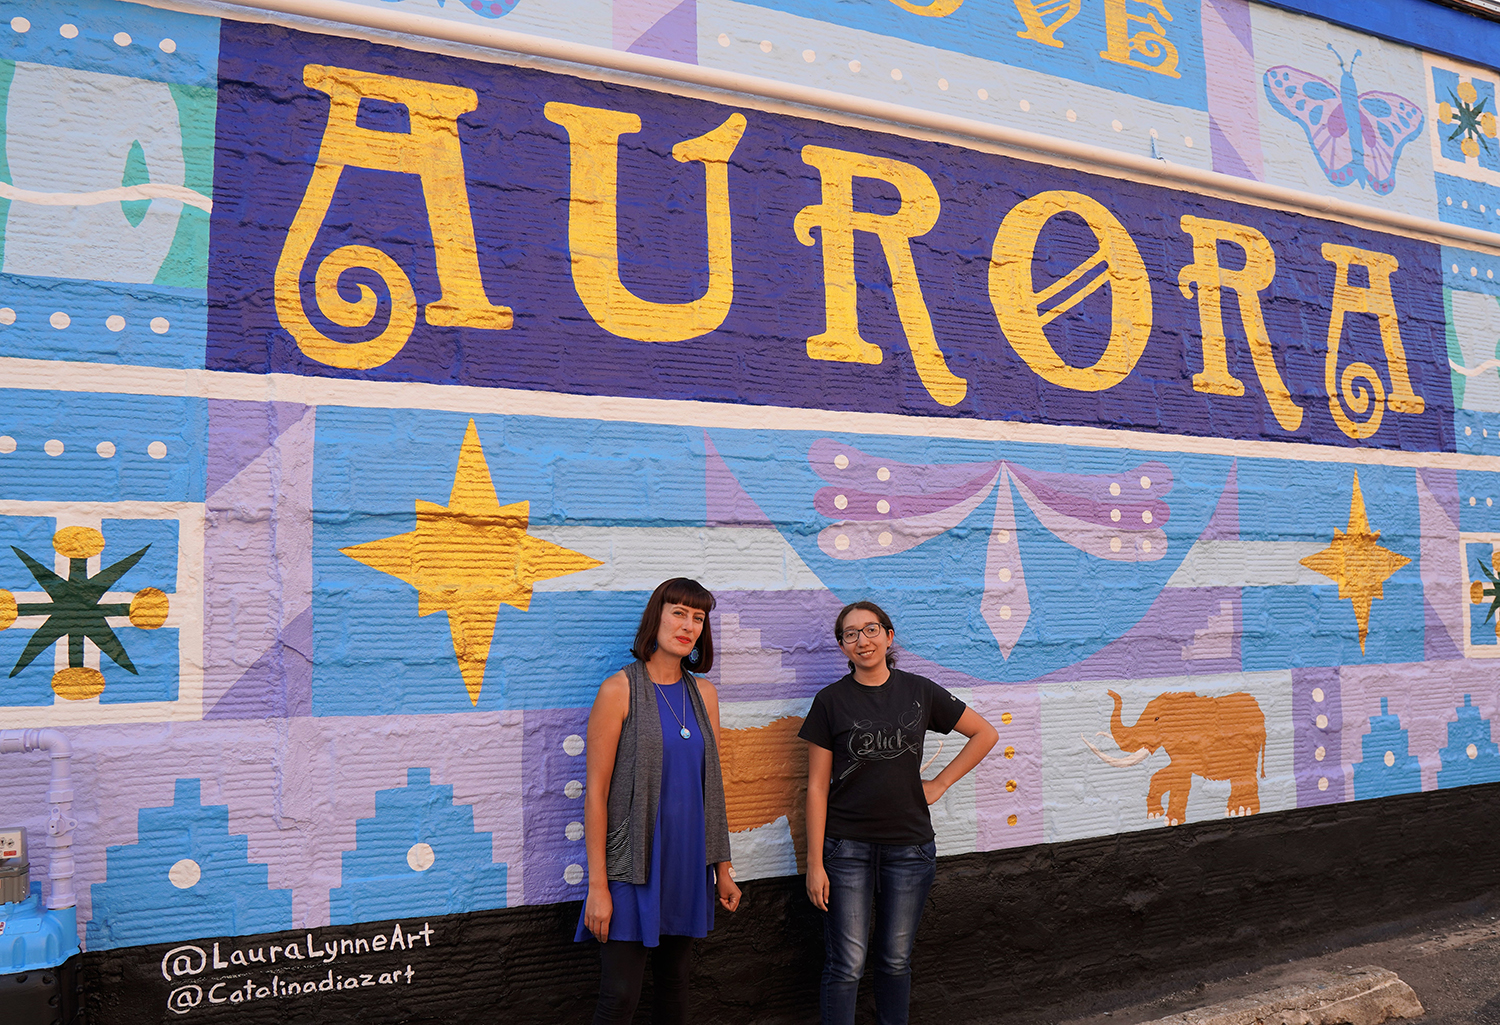 Laura Lynne Art and Catalina Diaz female artist team of the Aurora Unity Mural painting